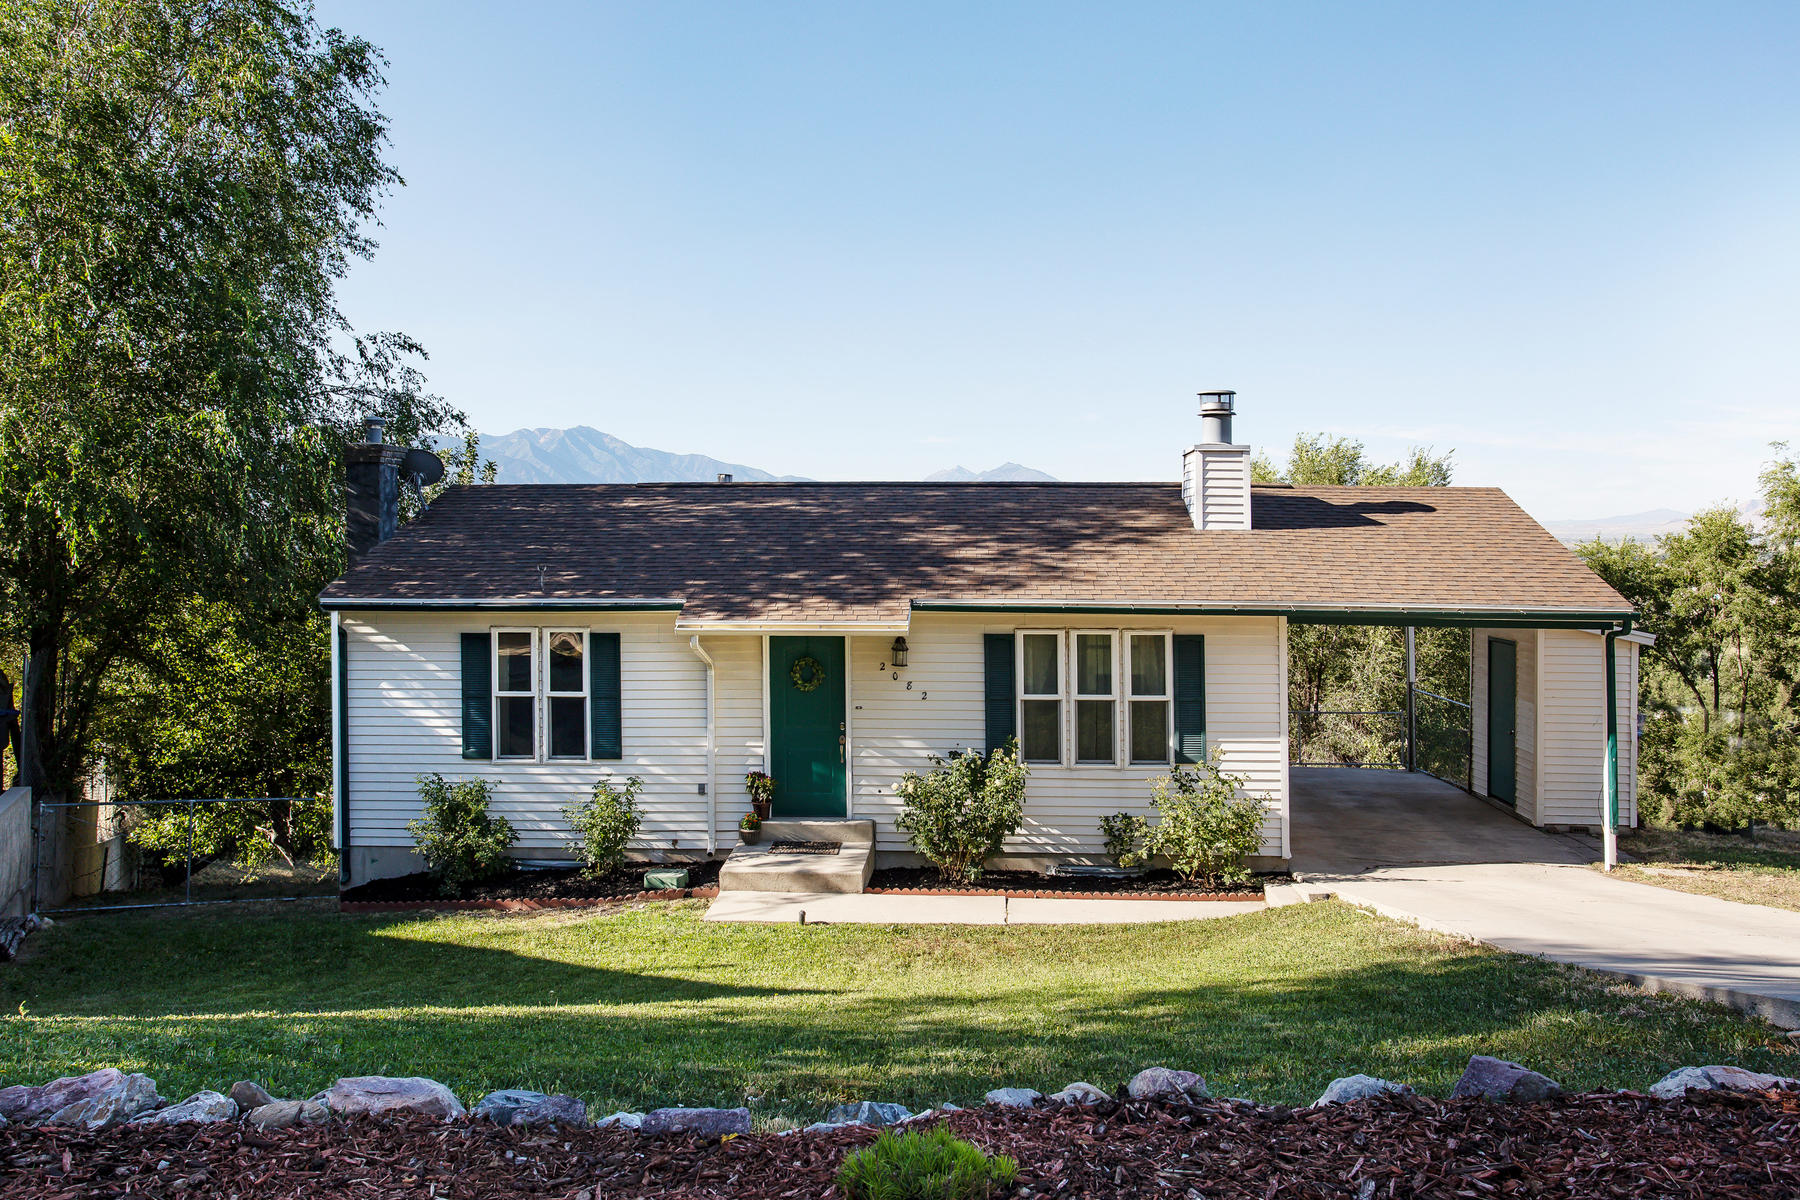 Single Family Homes for Active at Now Is Your Chance To Own a Home With Spectacular Views 2082 S Park Street Provo, Utah 84606 United States